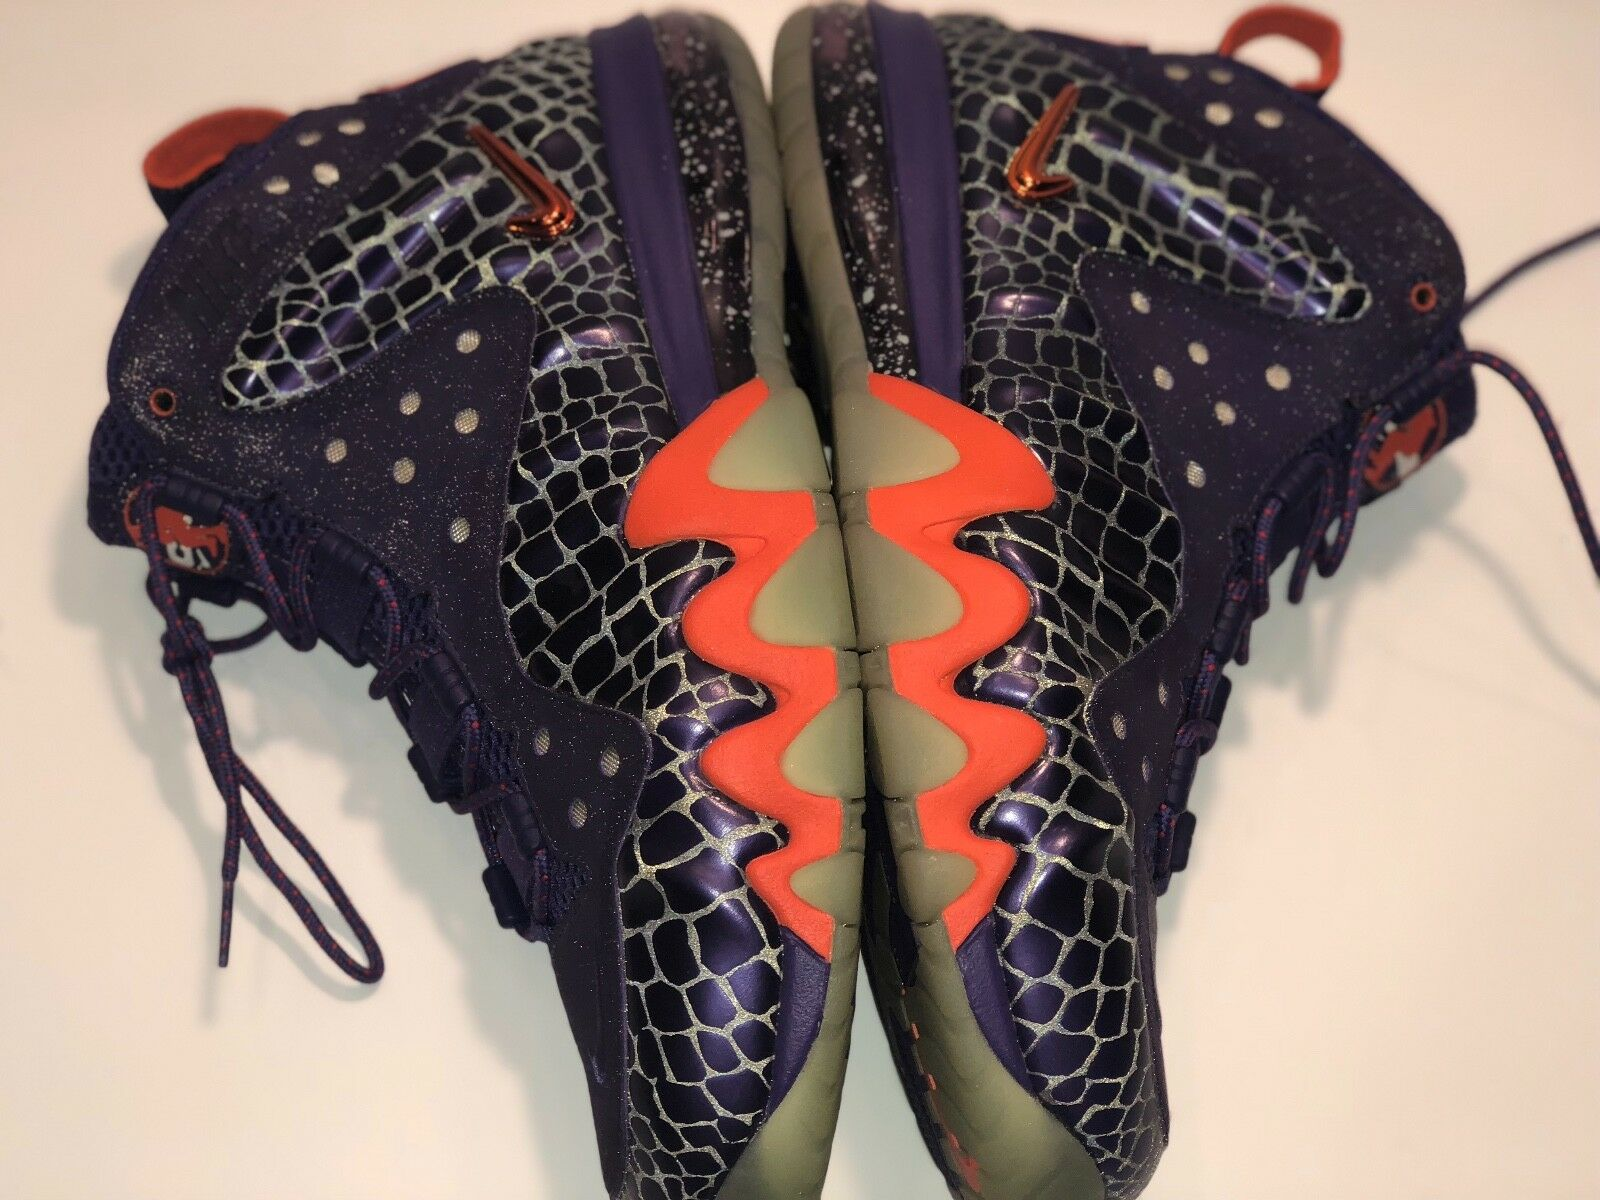 Nike Air Barkley Posite Max Chuckposite Sz 10 Suns Purple Orange  555097 581 New shoes for men and women, limited time discount